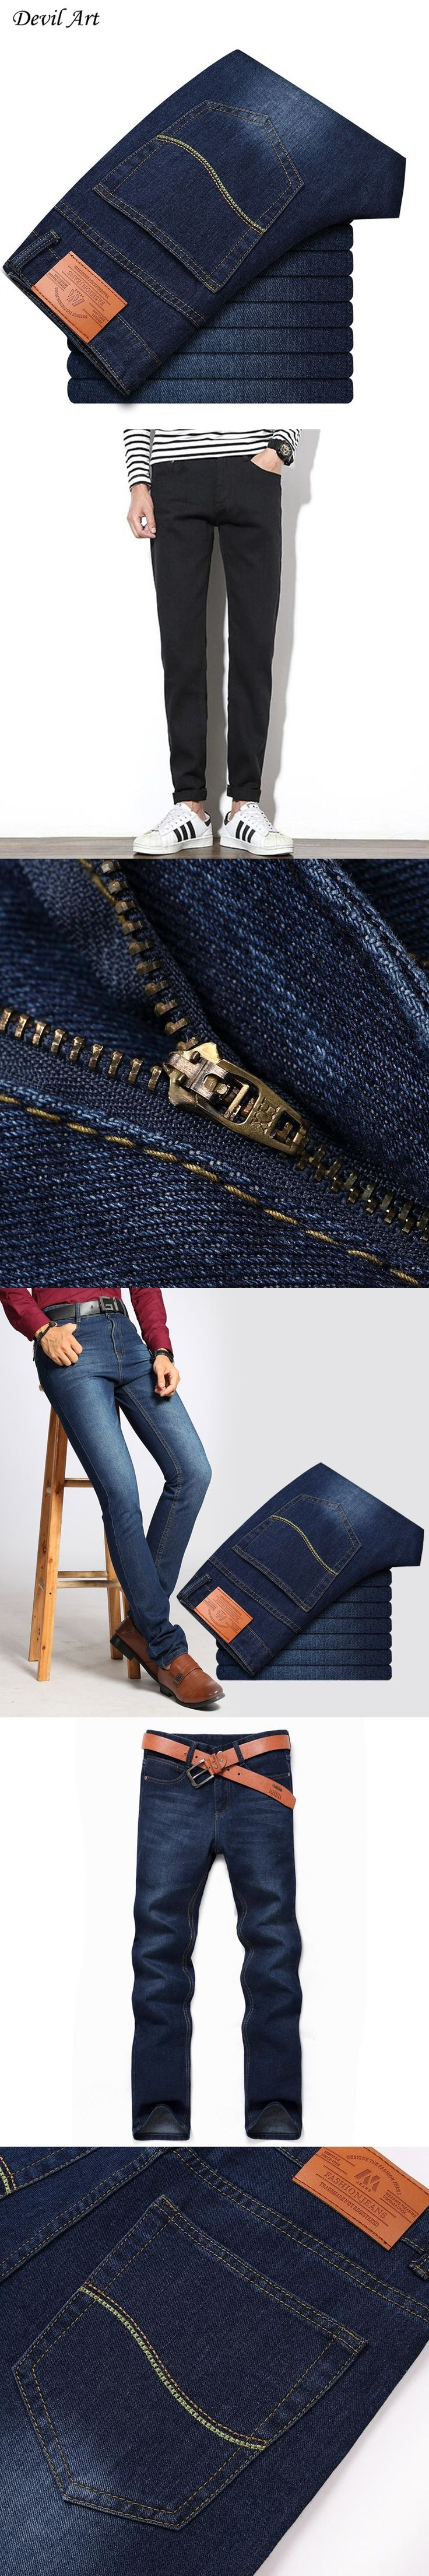 Free Shipping New 2017 Designer Jeans Men Jeans Famous Brand Skinny Jeans Men Low Factory Price Pants Male Denim Trousers  28-44